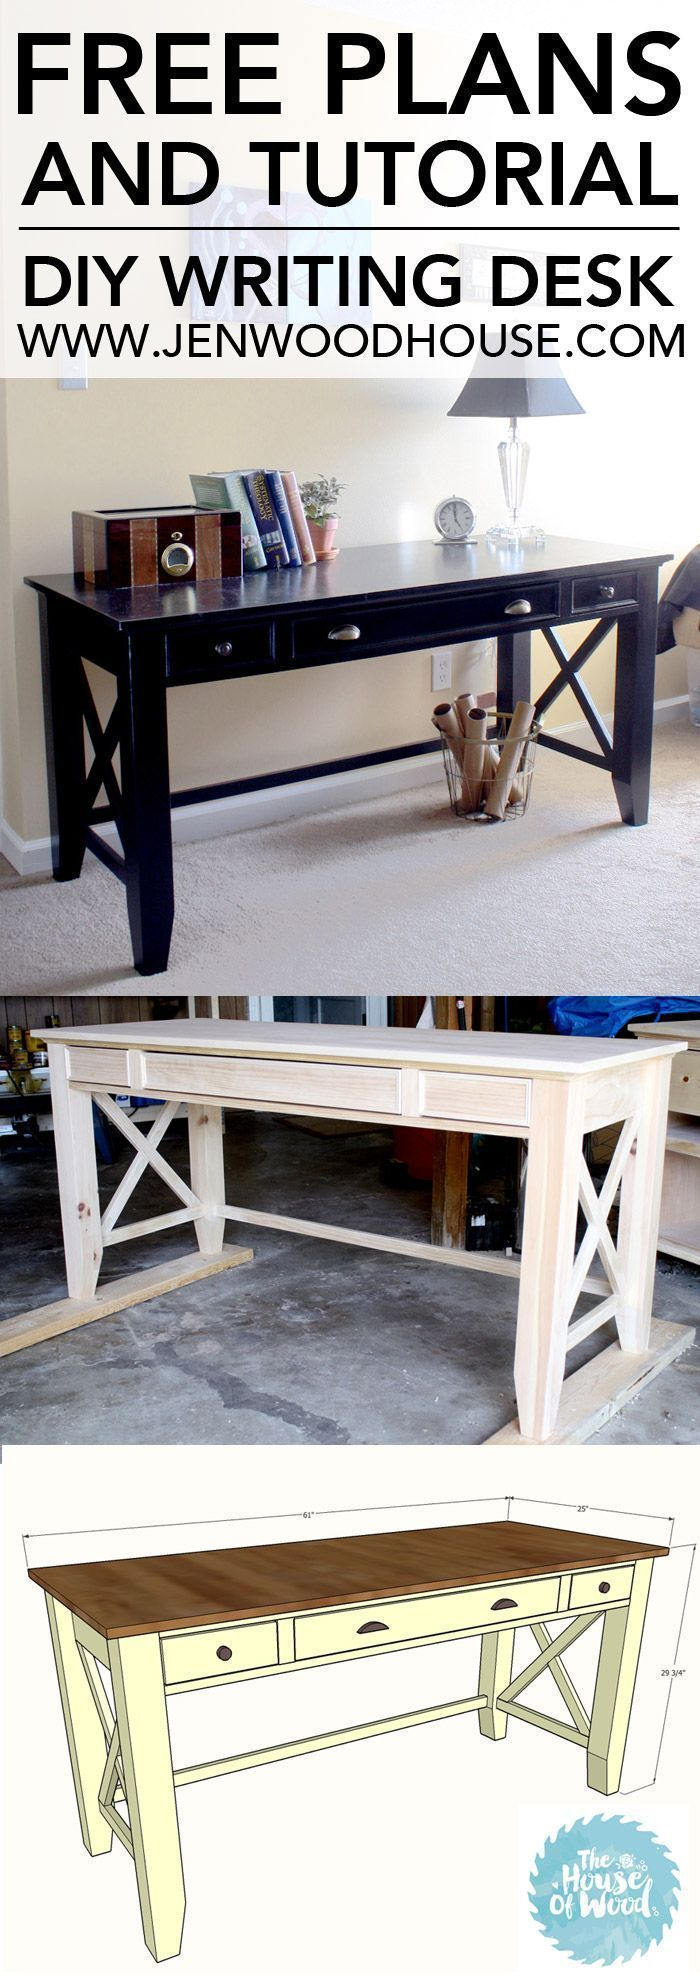 How to build a wingback chair my woodworking plans - Diy Writing Desk Desk Planswood Plansfurniture